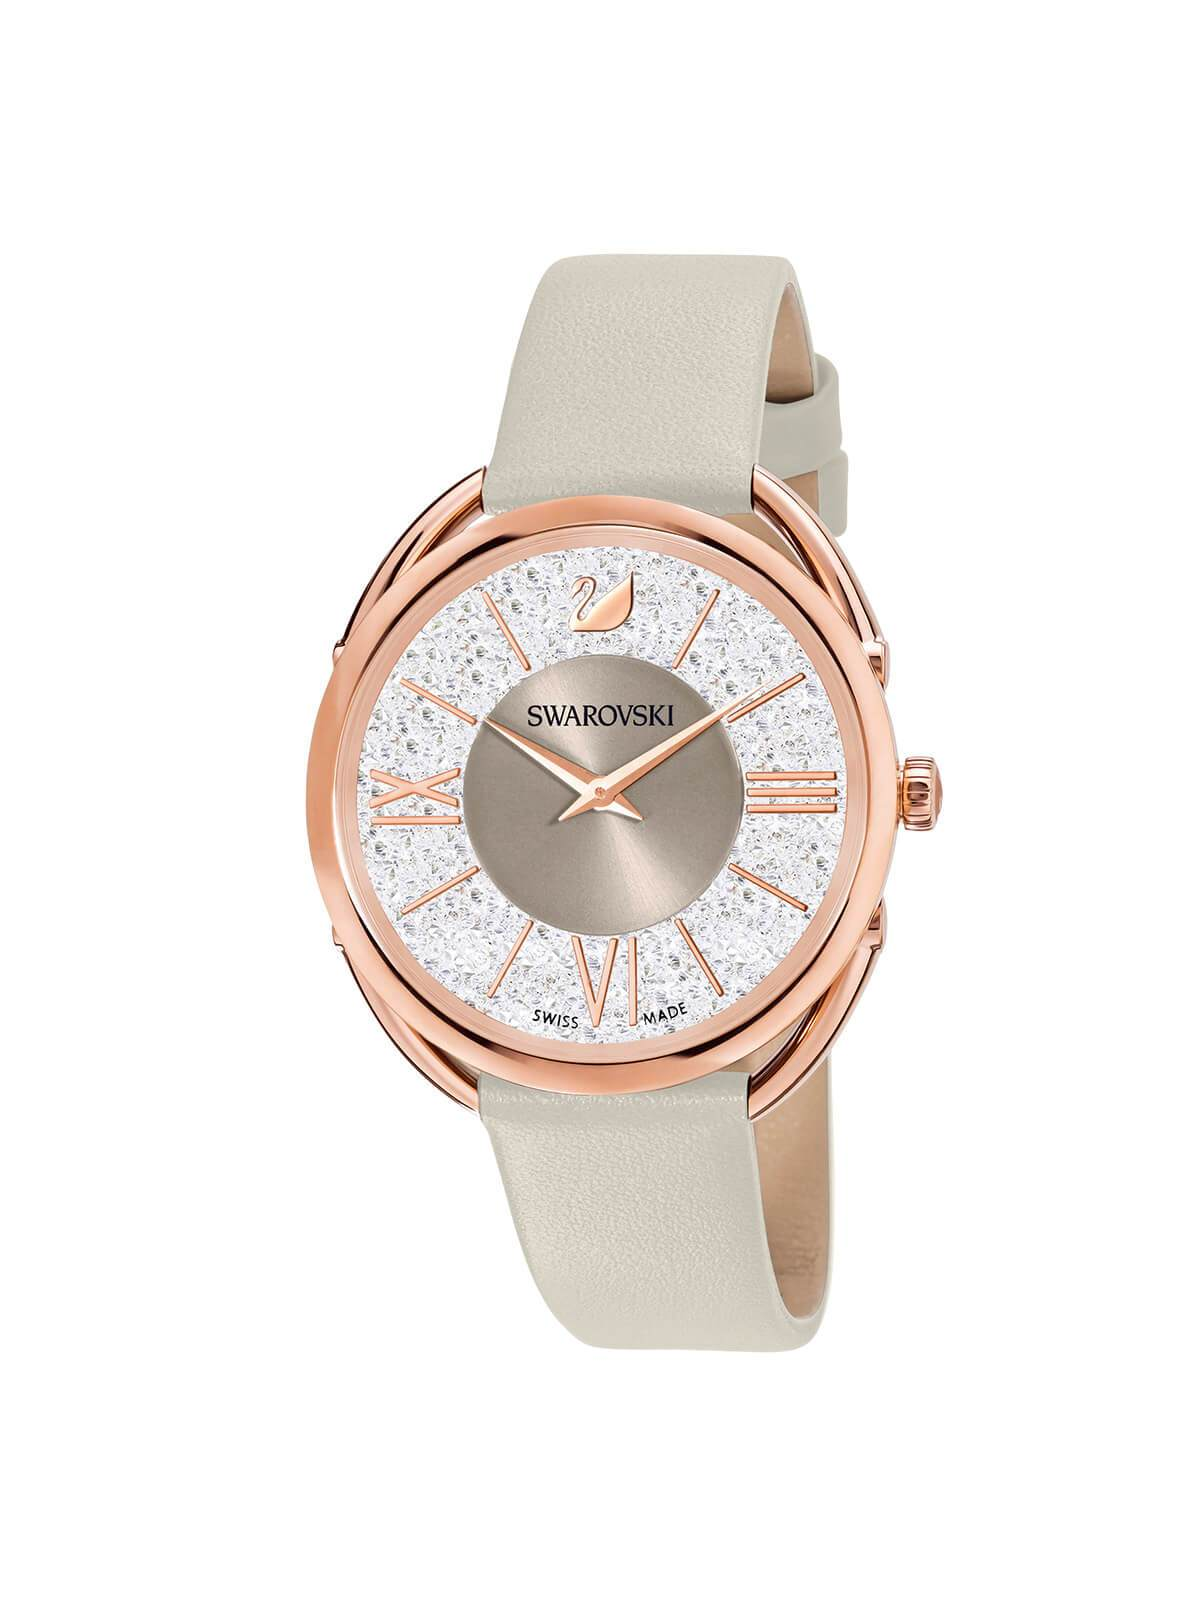 Swarovski Crystalline Glam Rose Gold Plated Watch on Leather Strap 5452455